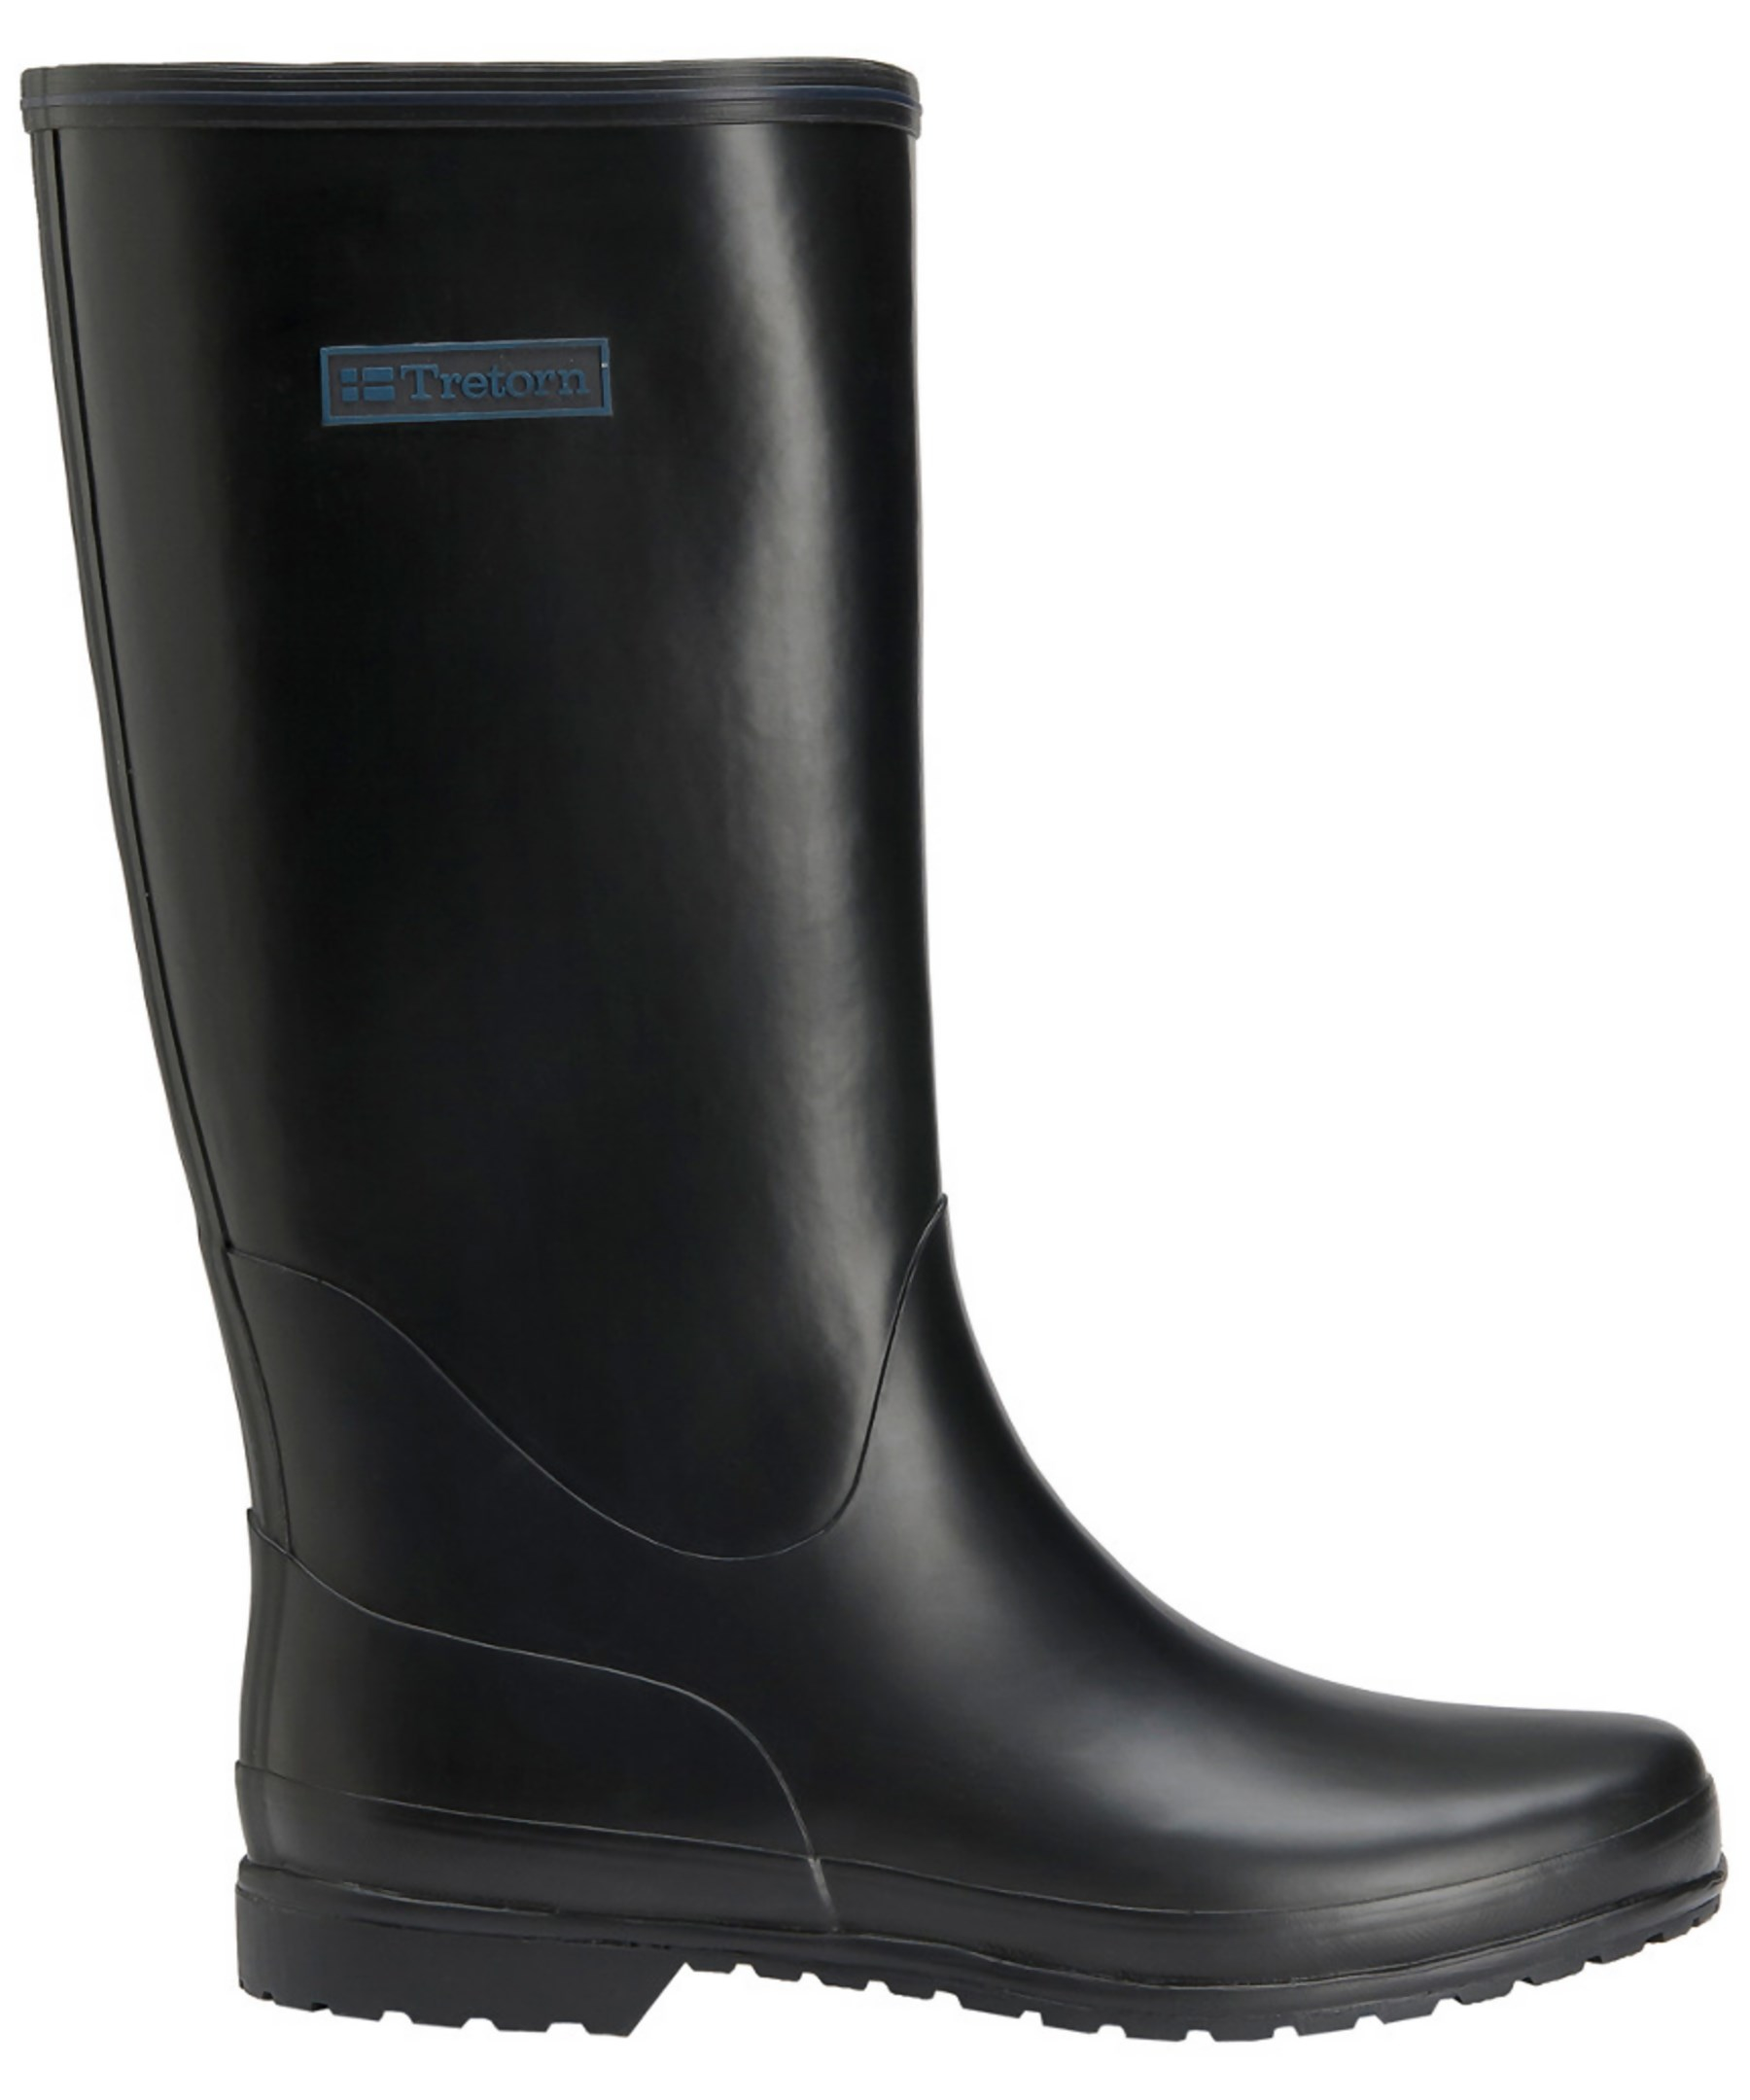 Awesome Tretorn Plask Mid Womens Size 8 Black Rubber Rain Boots Used | EBay